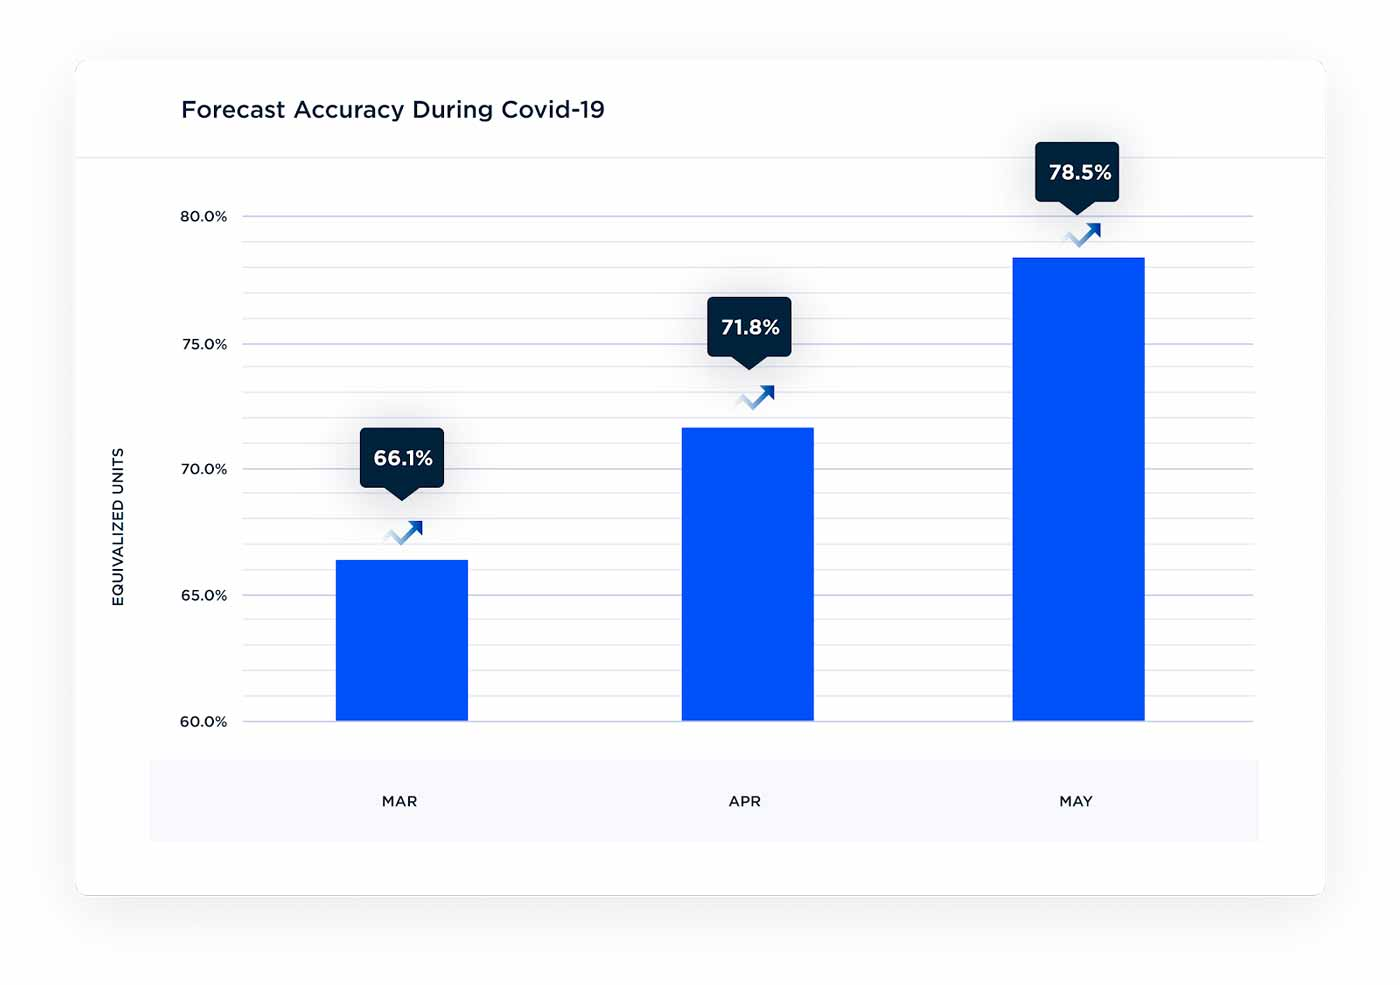 Unioncrate's forecast accuracy during Covid-19